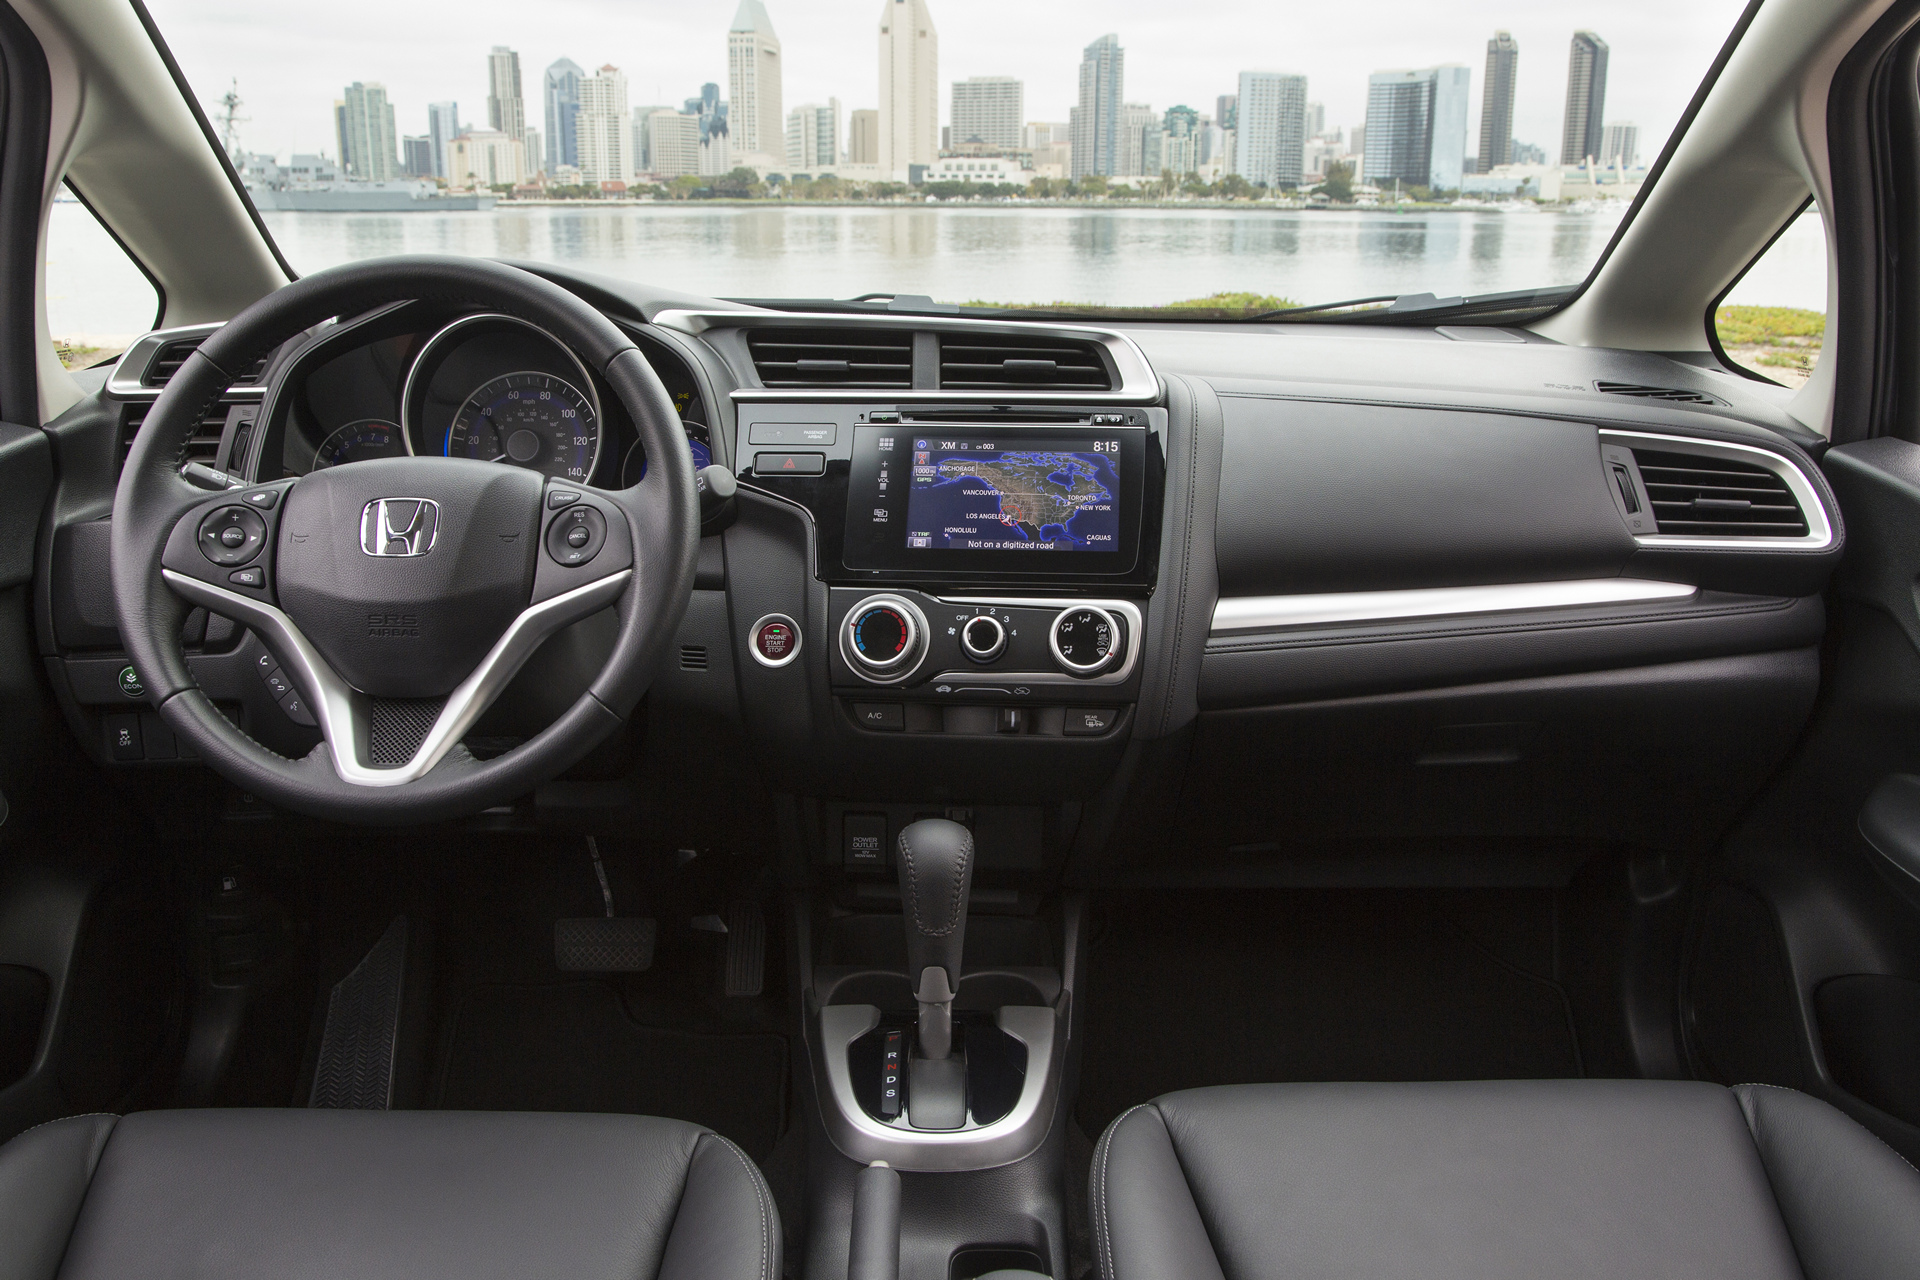 2016 Honda Fit © Honda Motor Co., Ltd.